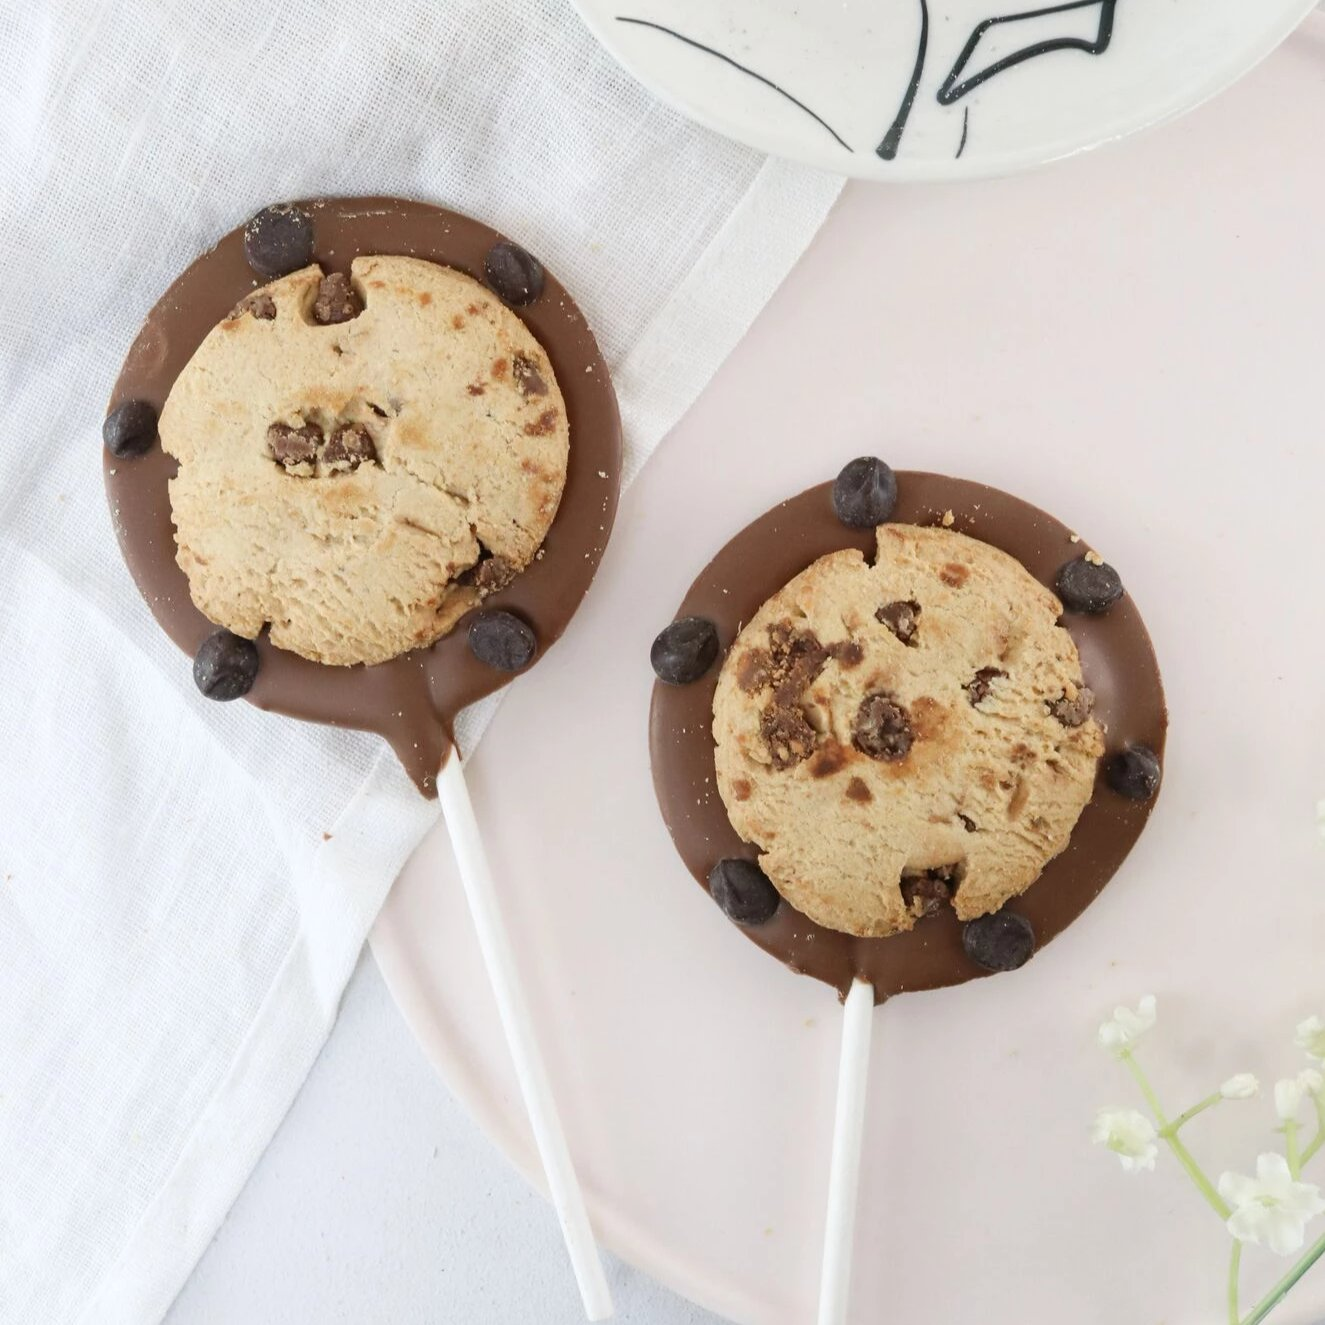 Milk Chocolate Cookie Lollipop - The Home Of Fully Loaded boozy Chocolate. Large Slabbs of boozy chocolate with a variety of alcoholic ganaches; gin, rum, whisky, amaretto, baileys and toppings. Available as monthly subscriptions.